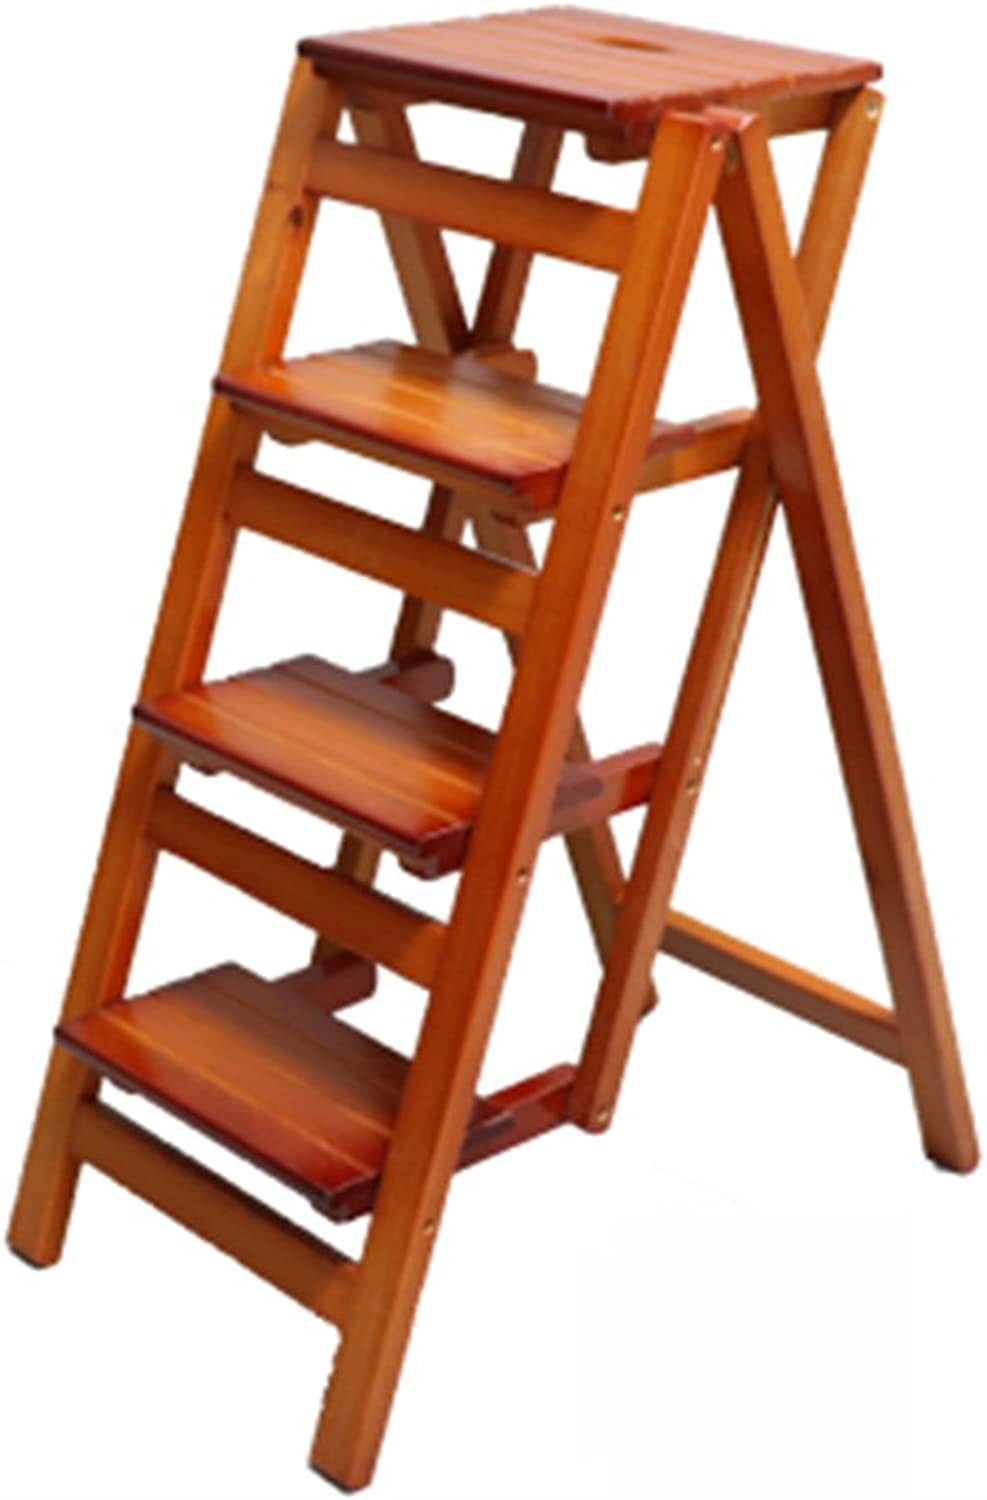 NEVY-Ladder Stools Household Non-slip All Solid Wood Multifunction Foldable Wholesale Safety Health, 4 Step Ladder (color   Light walnut)